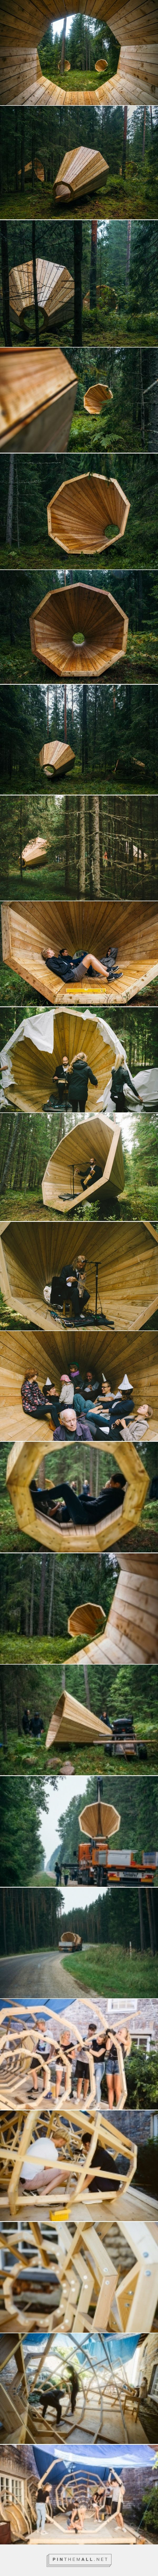 estonian students amplify forest ambiance with megaphone-like library spaces - created via http://pinthemall.net